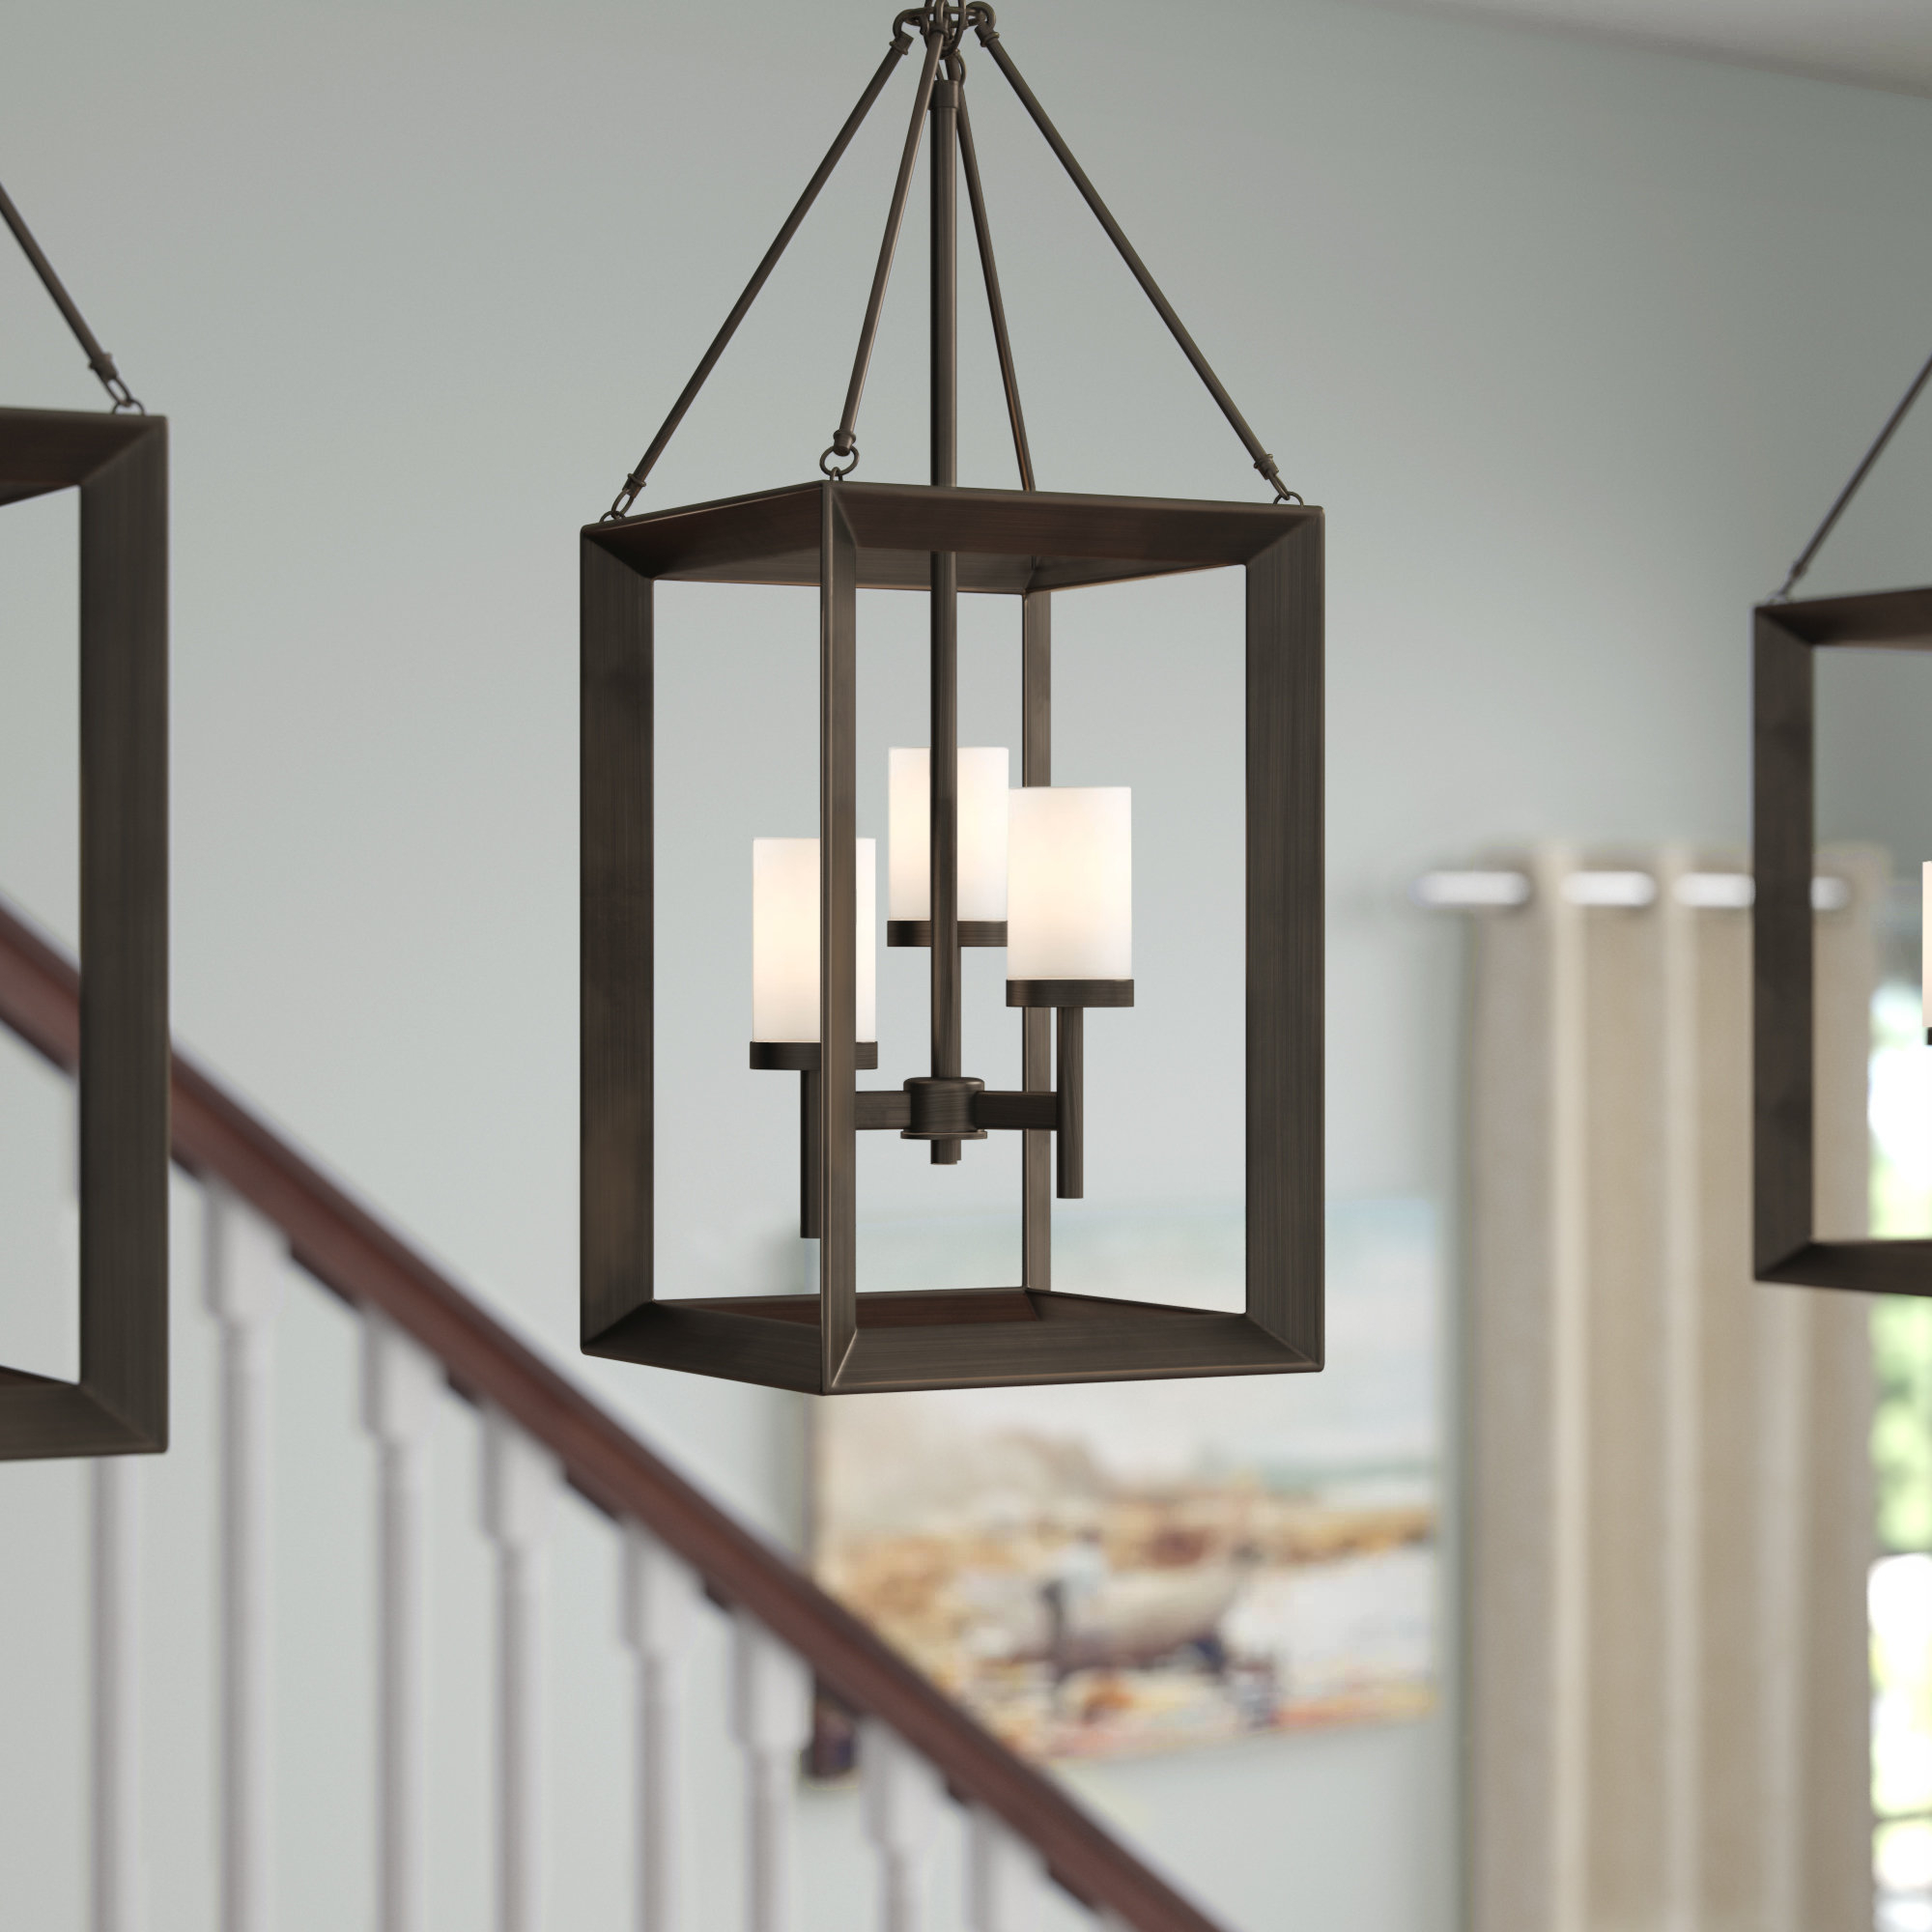 Thorne 3 Light Lantern Square Pendant With Regard To Best And Newest Odie 4 Light Lantern Square Pendants (View 19 of 25)